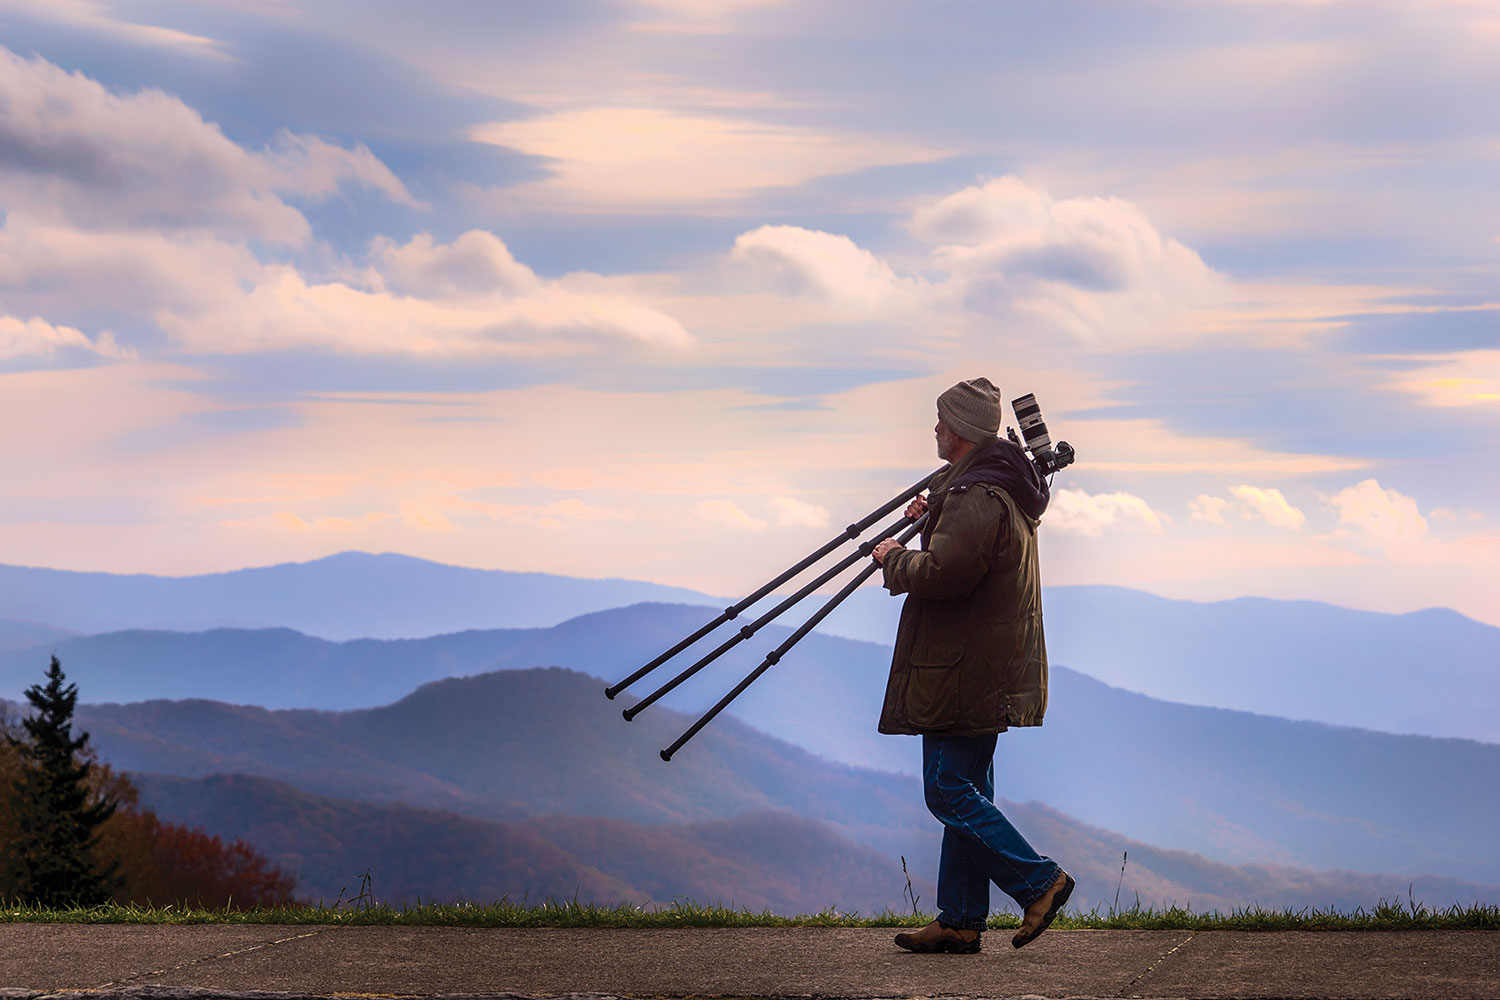 Sam Stapleton dressed in winter gear carries his tripod and camera as he walks along as sidewalk with a mountainous view in the background.